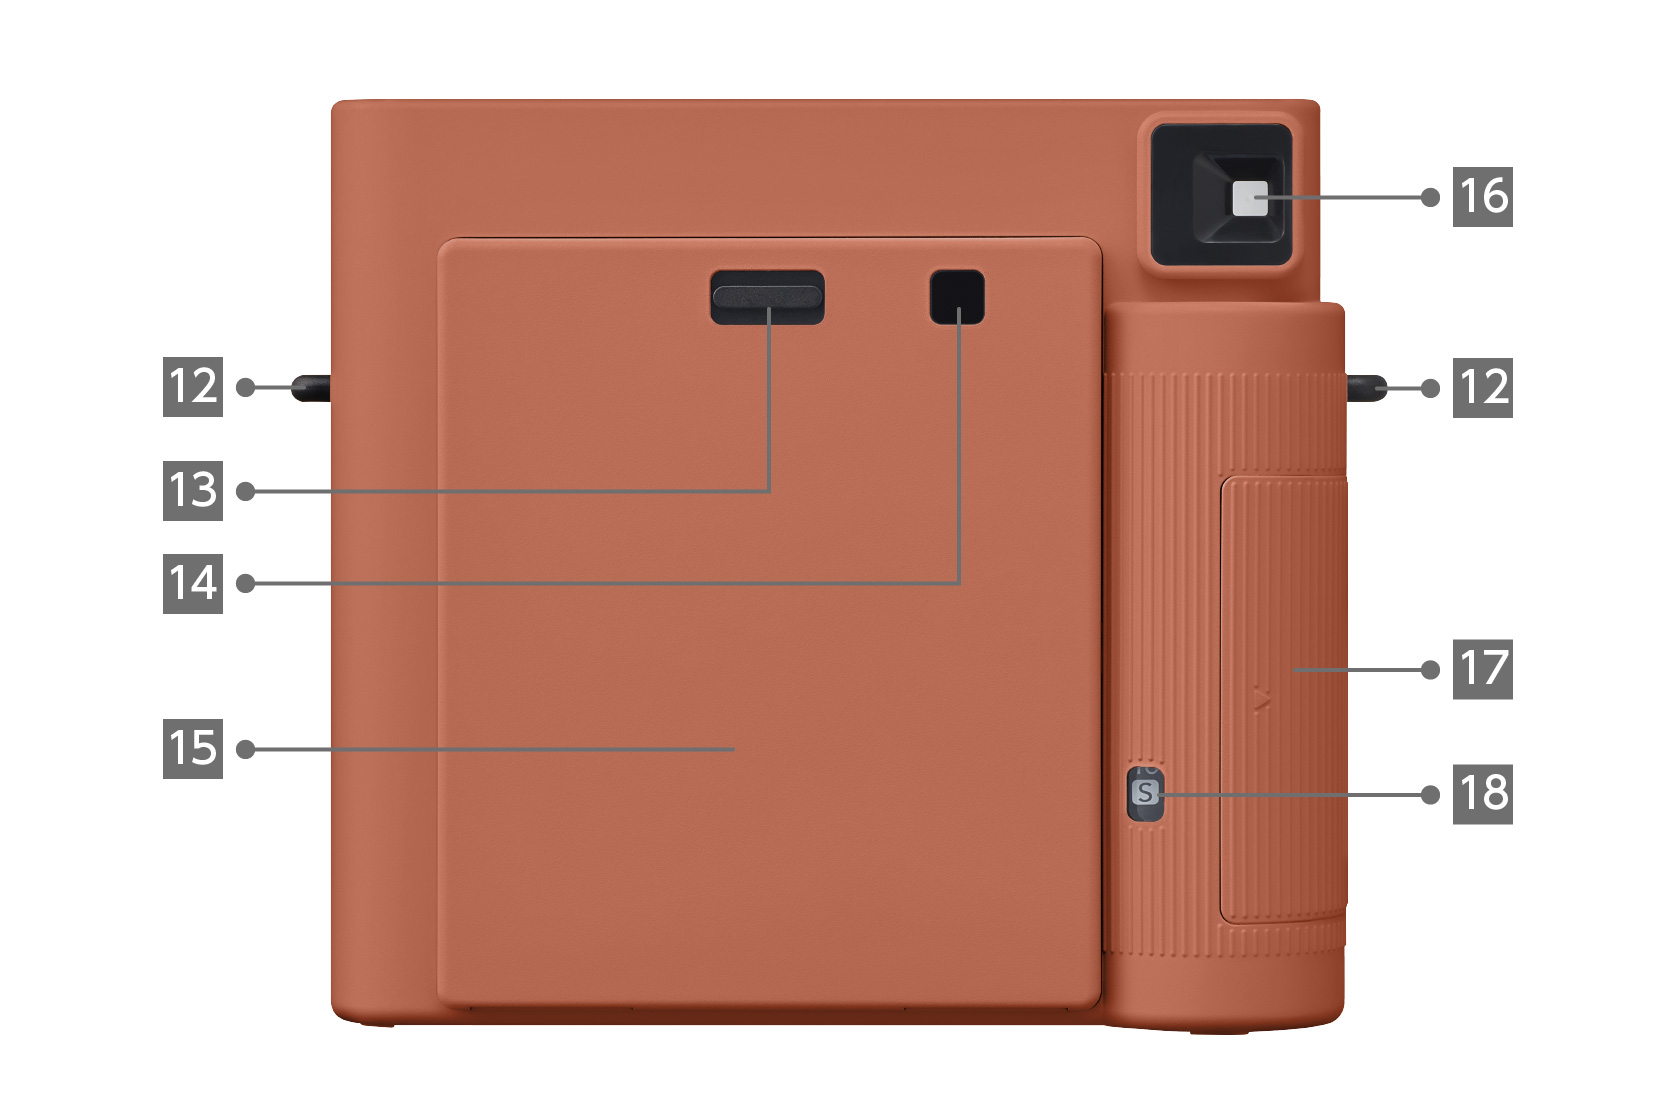 [photo] INSTAX SQUARE SQ1 camera in Terracotta Orange color, Back view